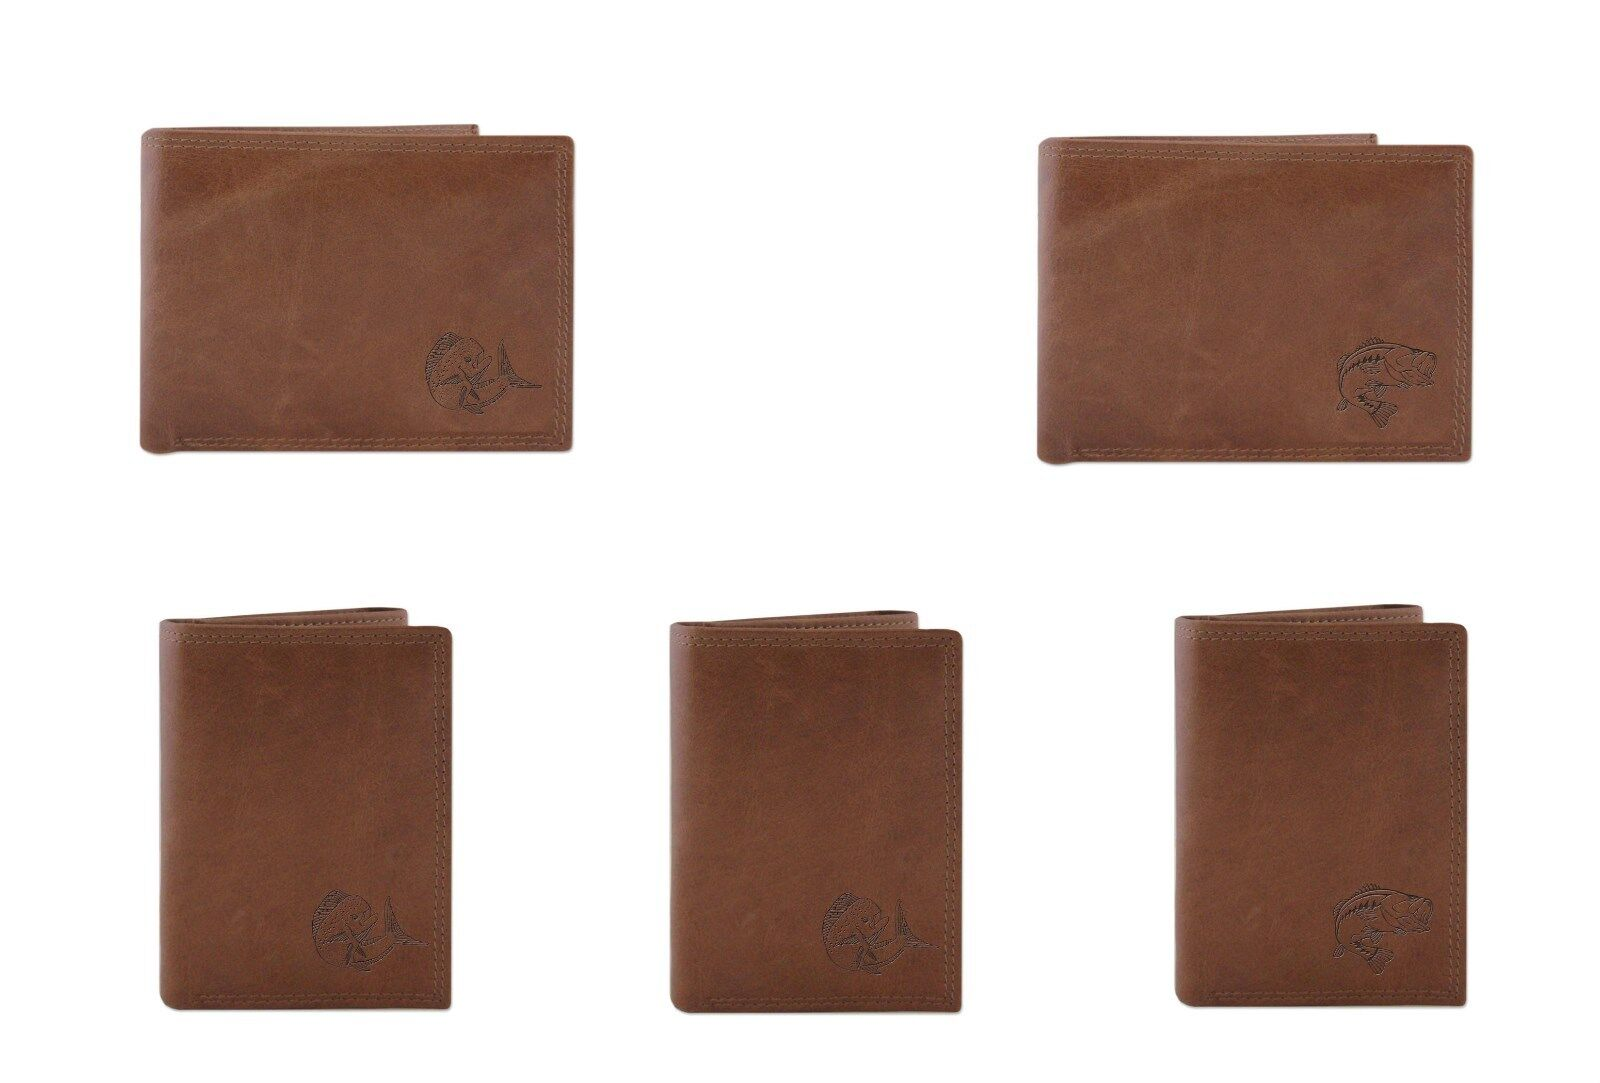 ZEP-PRO Leather Embossed MAHI DOLPHIN MARLIN BASS Wallet Bifold or Trifold